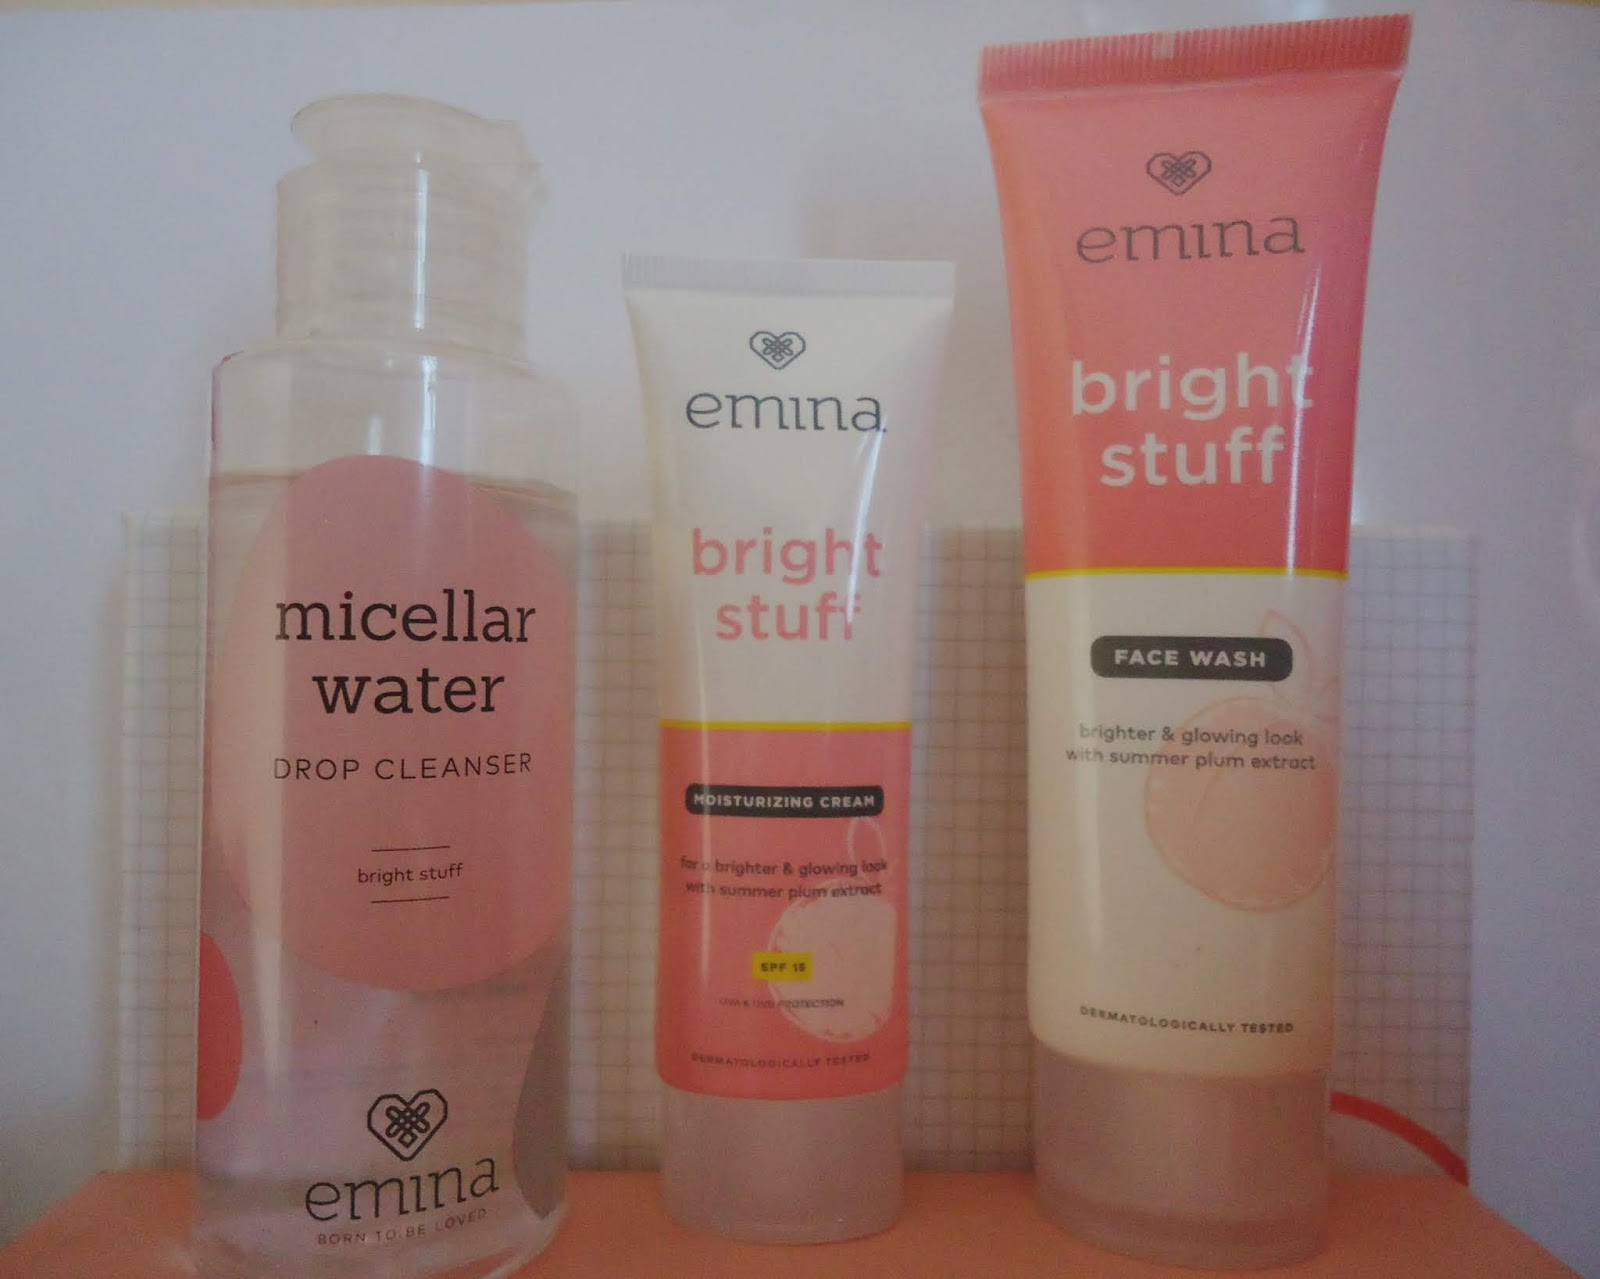 Safira Nys Review Skincare Emina Beauty Bestie Bright Stuff Teens Approved